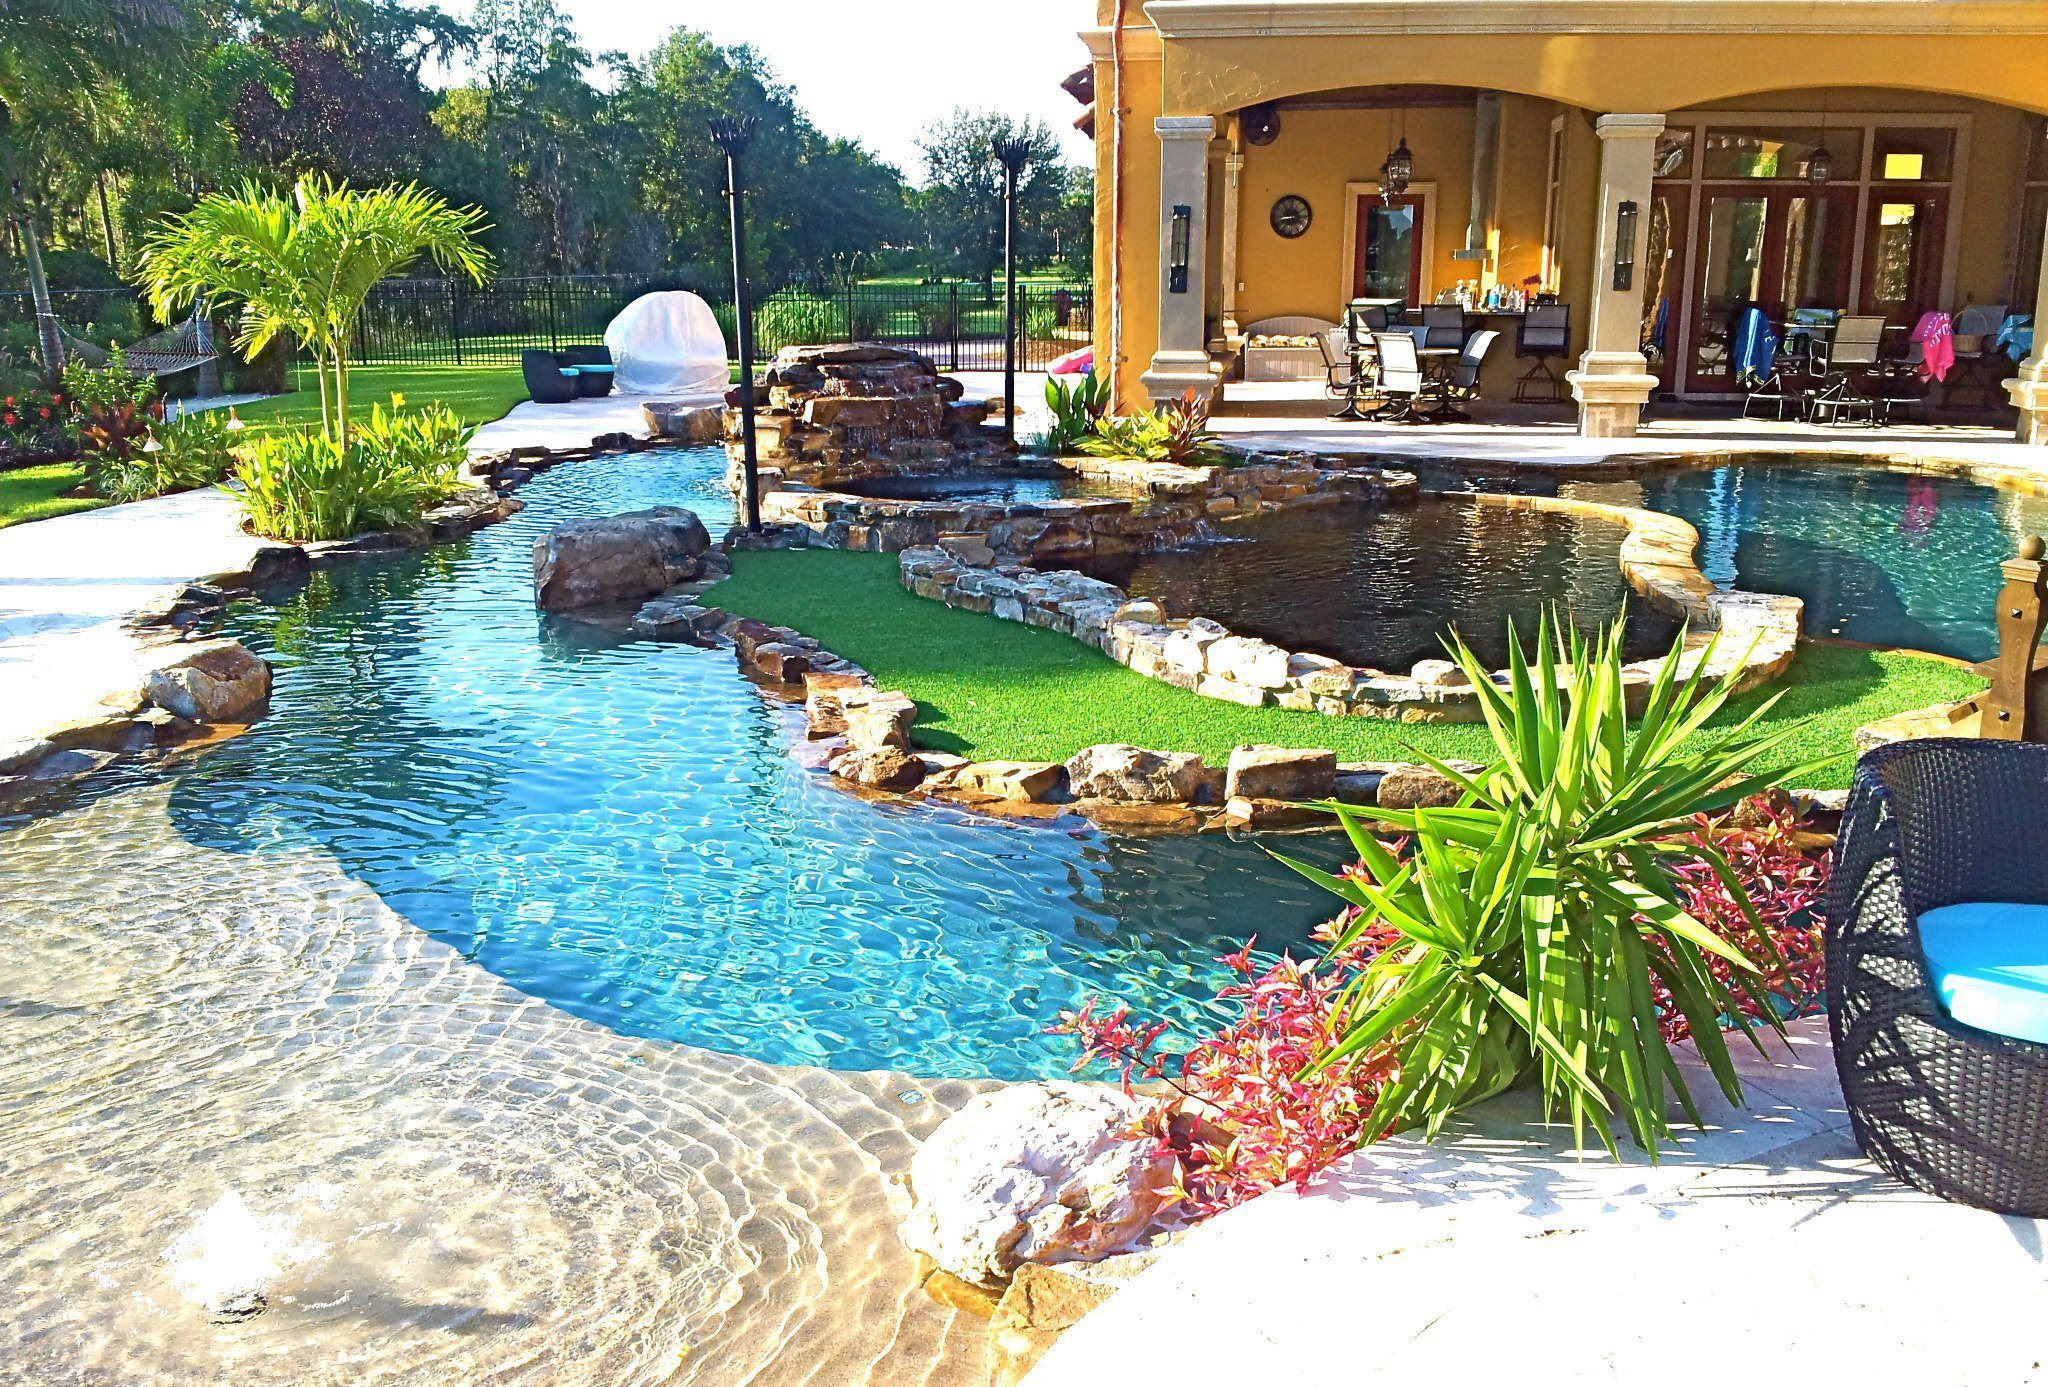 Backyard oasis lazy river pool with island lagoon and for Pictures of backyard pools